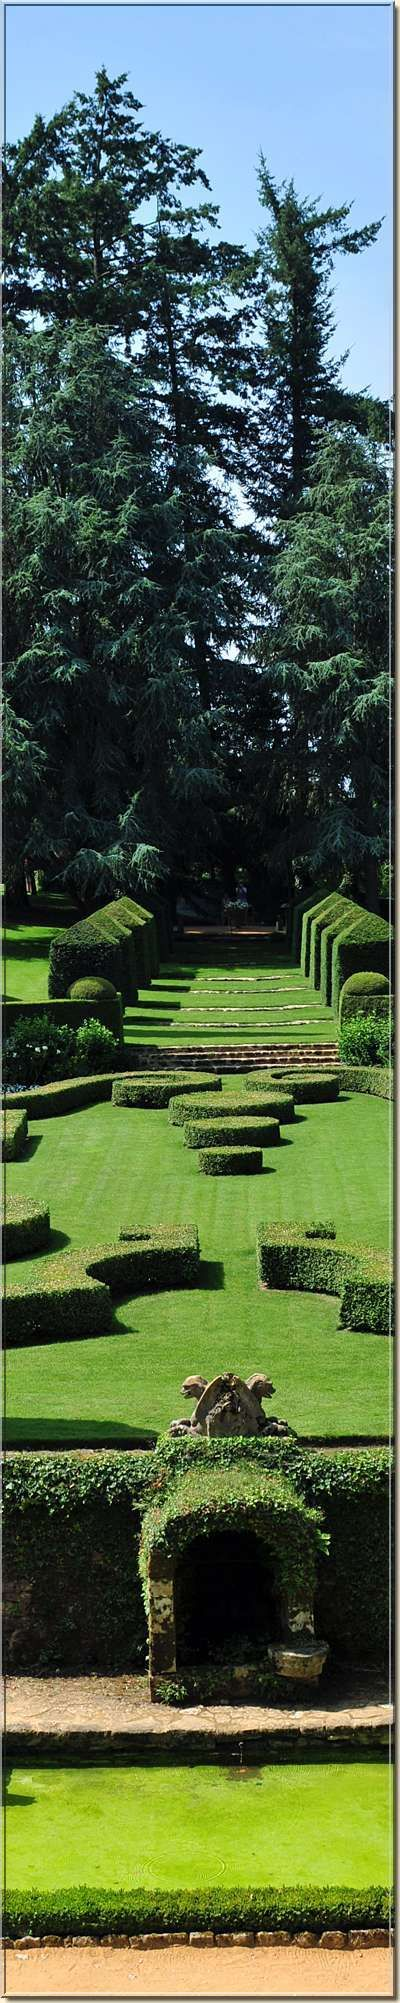 The Gardens of Eyrignac in France...how is this for inspiration?